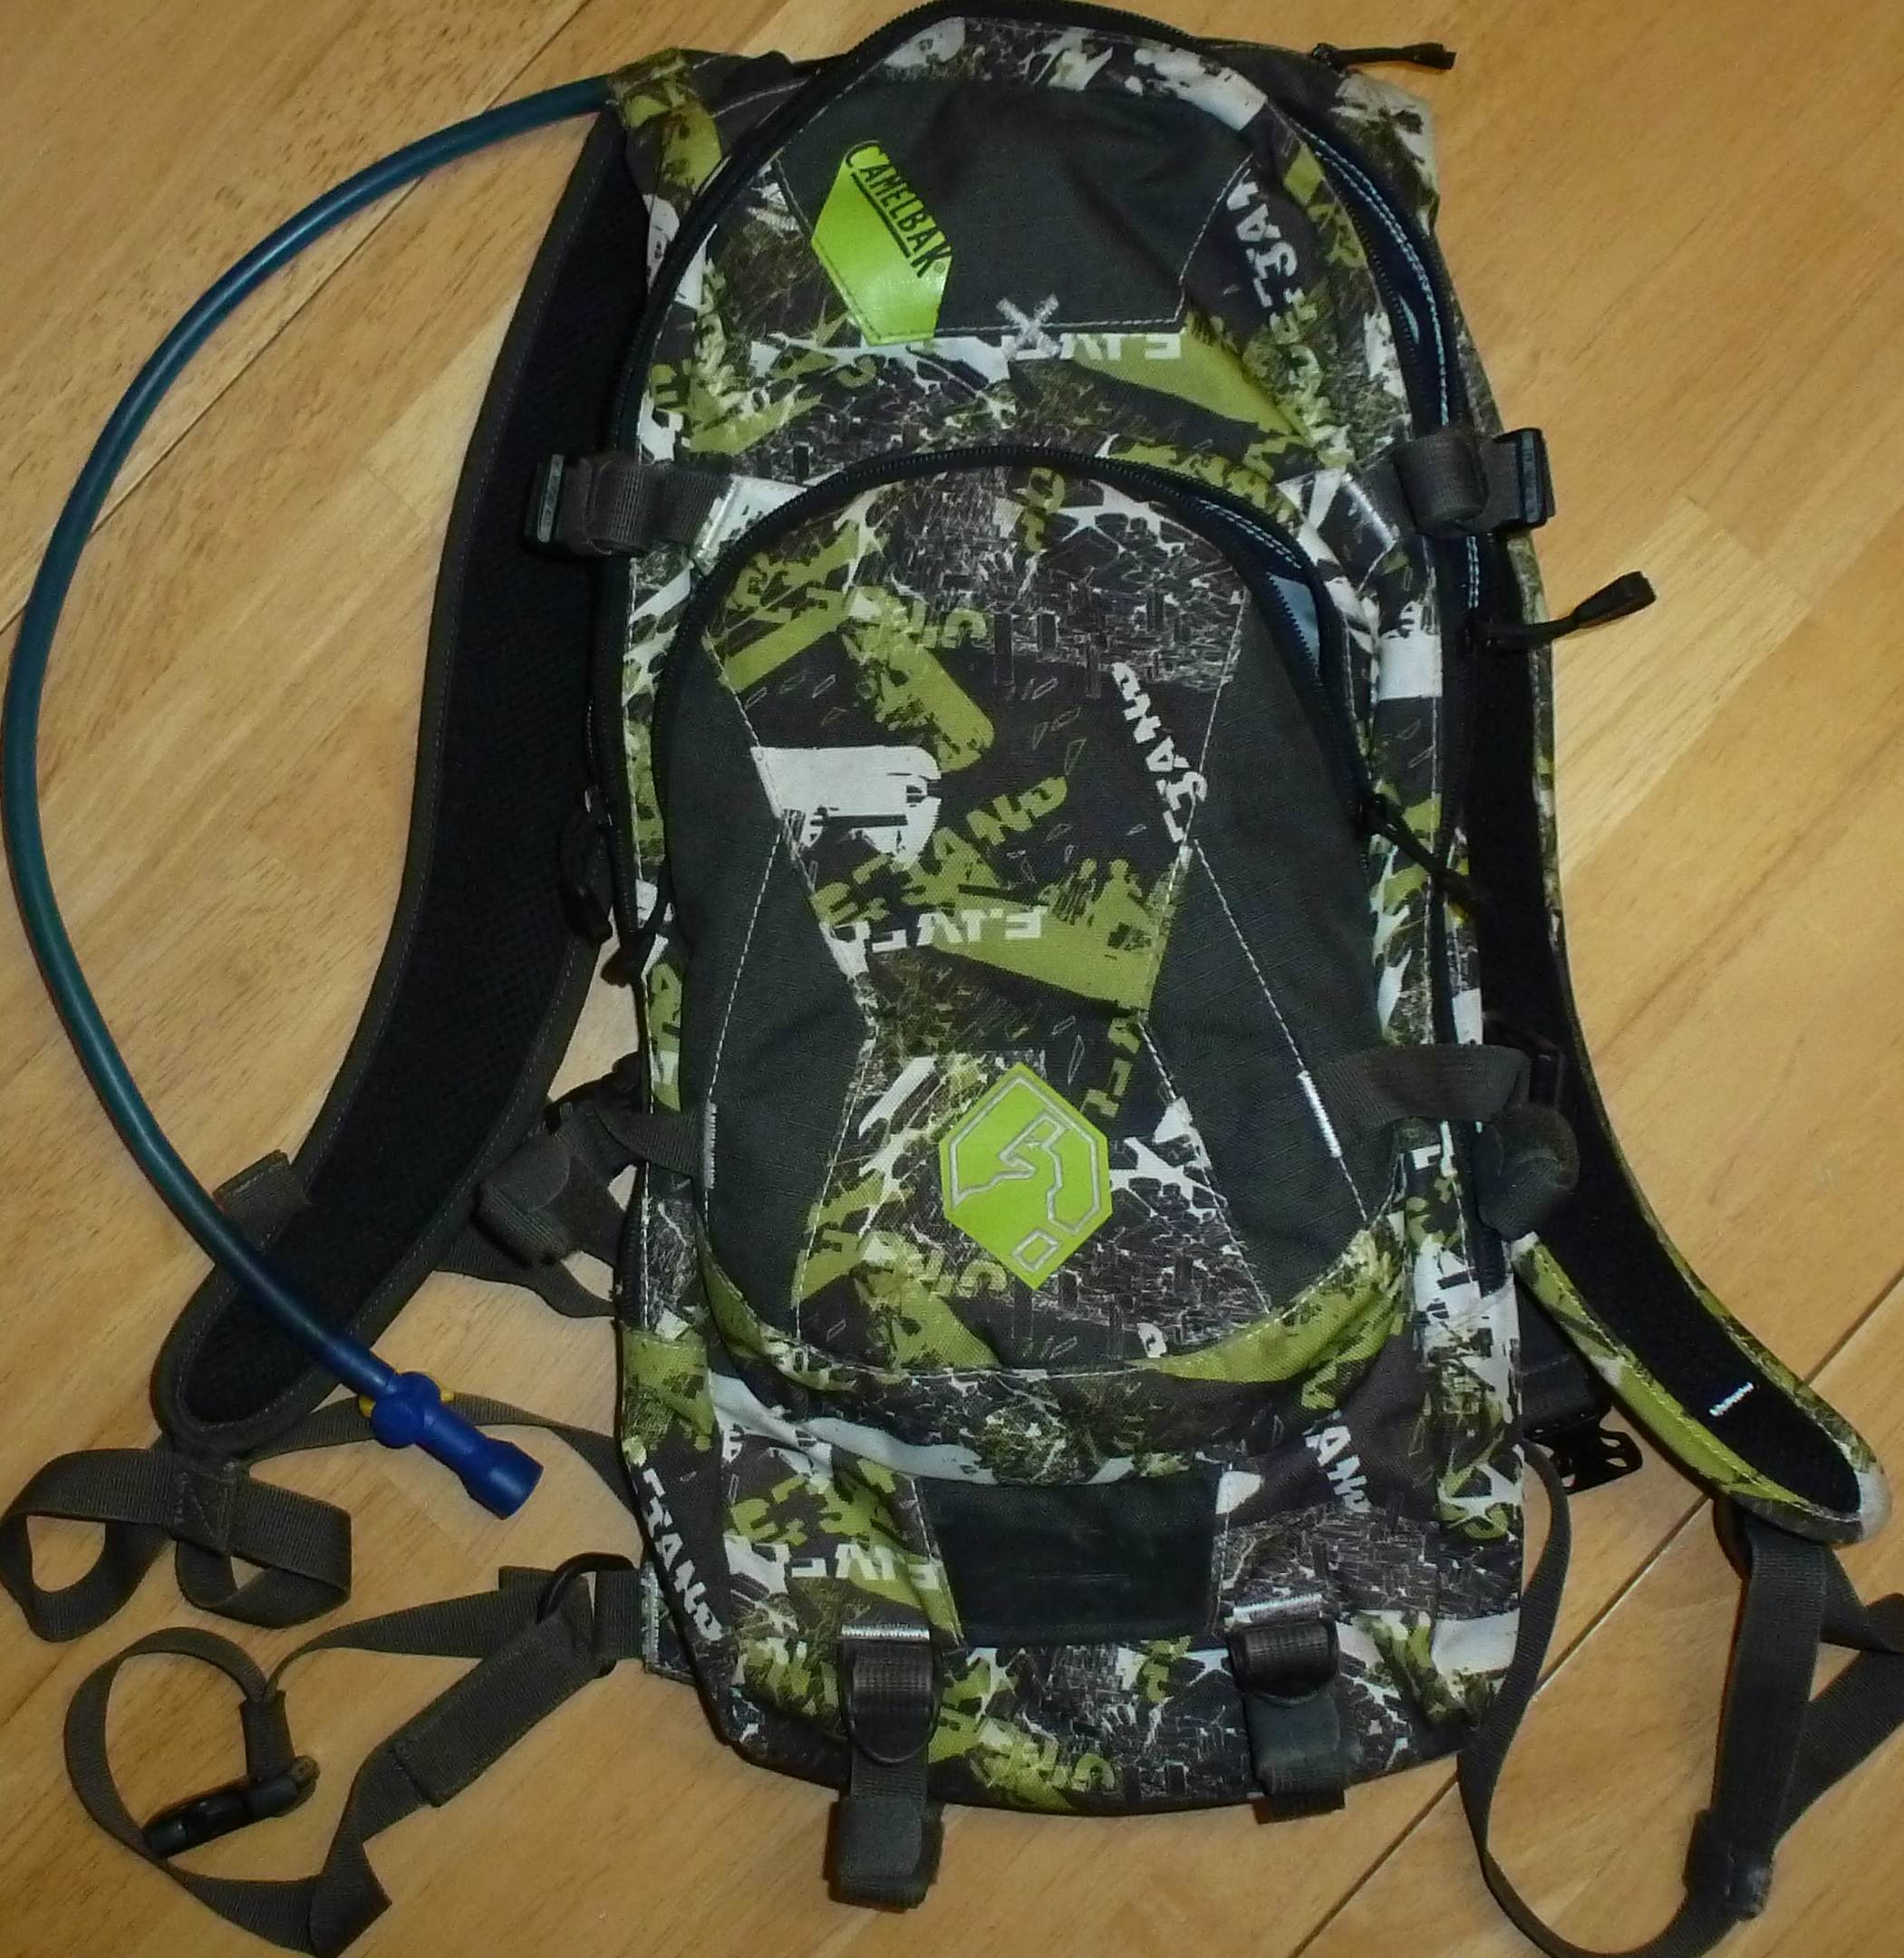 Cleaning your Camelbak Hydration System